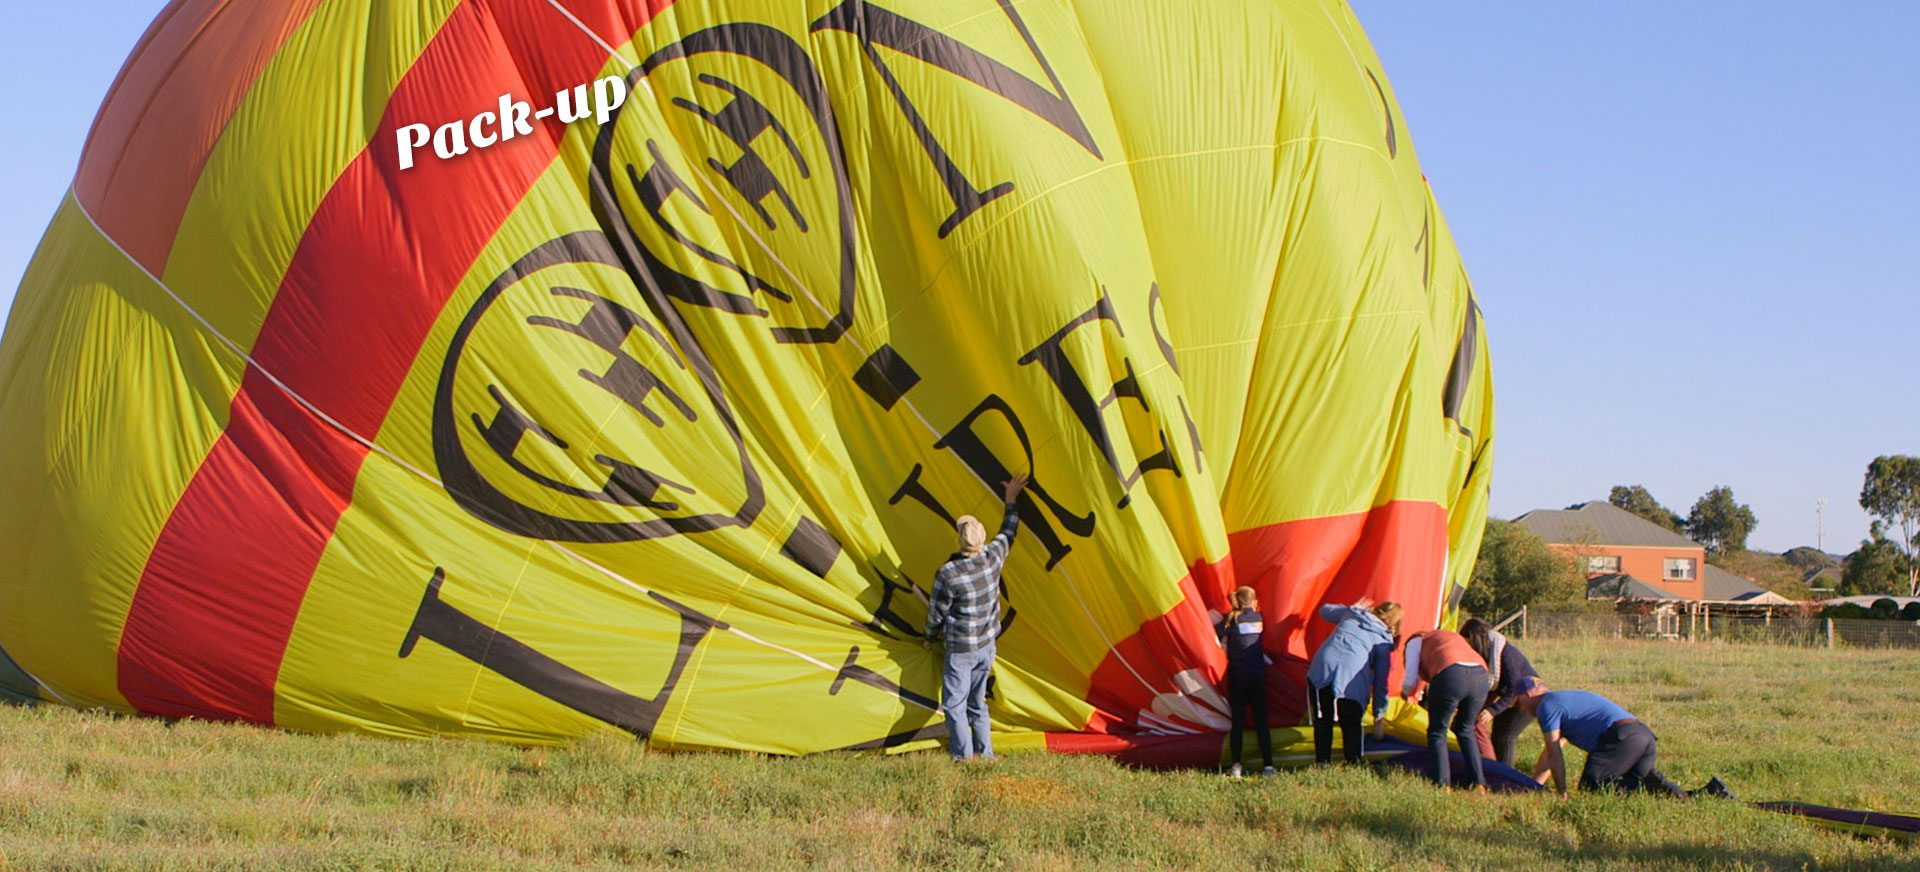 balloon-adventures-hot-air-balloon-flights-over-the-barossa-valley-flight-step-17